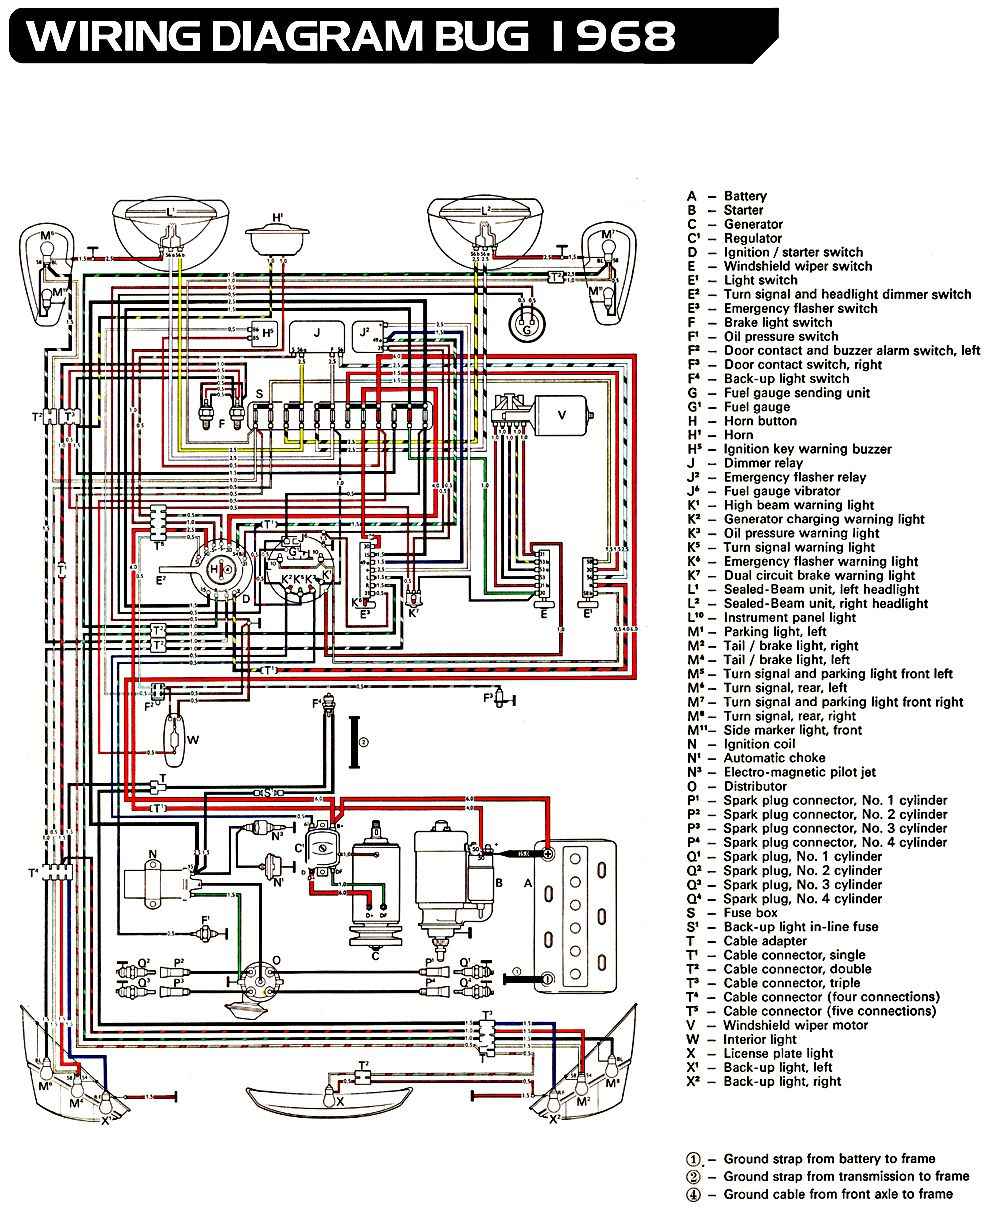 hight resolution of 1971 vw wiring diagram wiring diagram inside 1971 vw karmann ghia wiring diagram 1971 vw wiring diagram